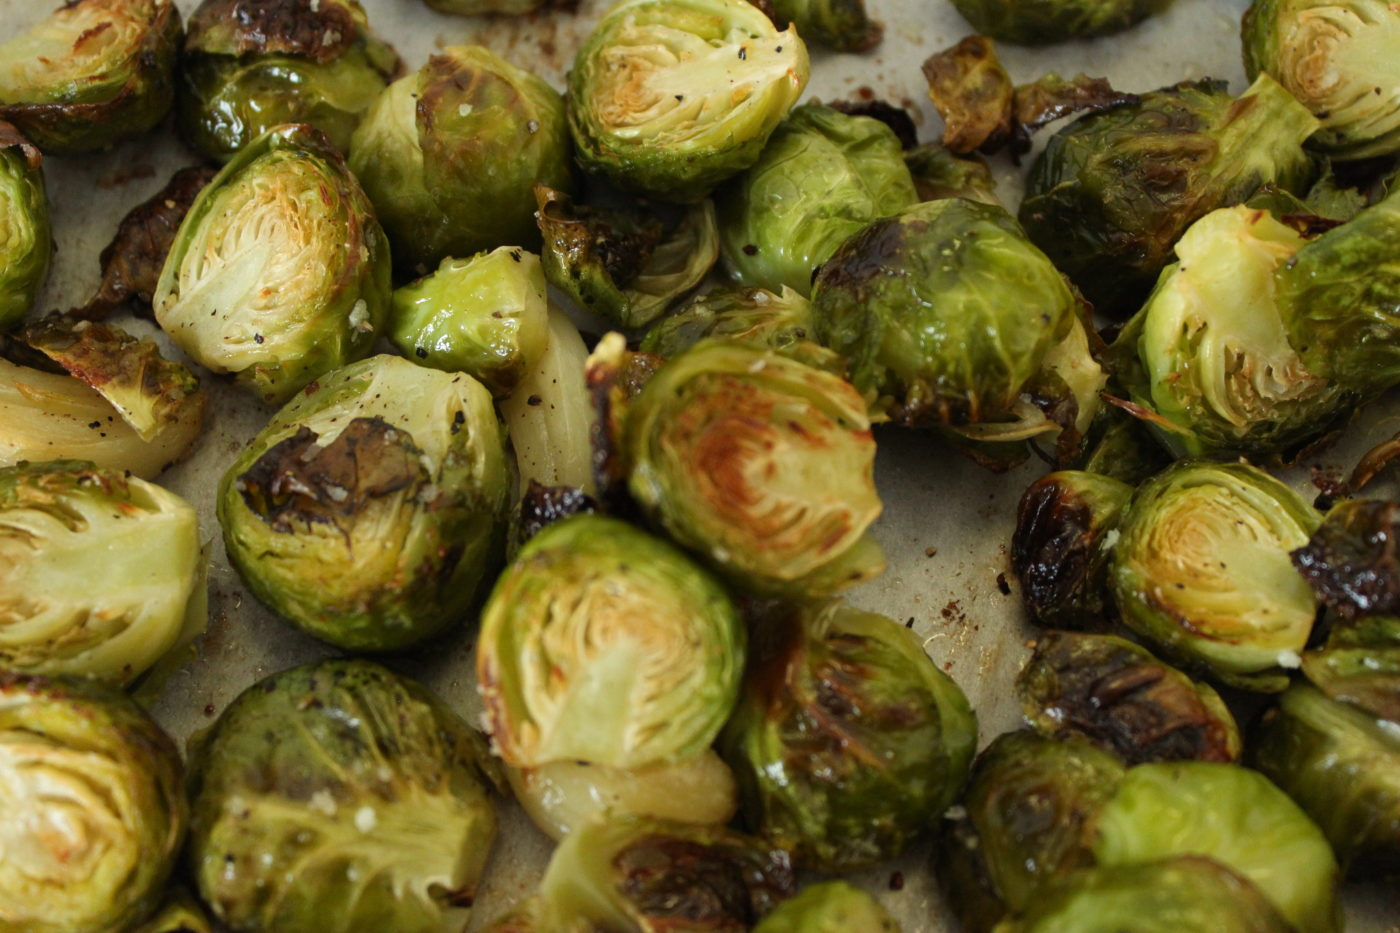 Roasting Brussels sprouts with olive oil, salt, pepper and garlic is the best way to prepare them.